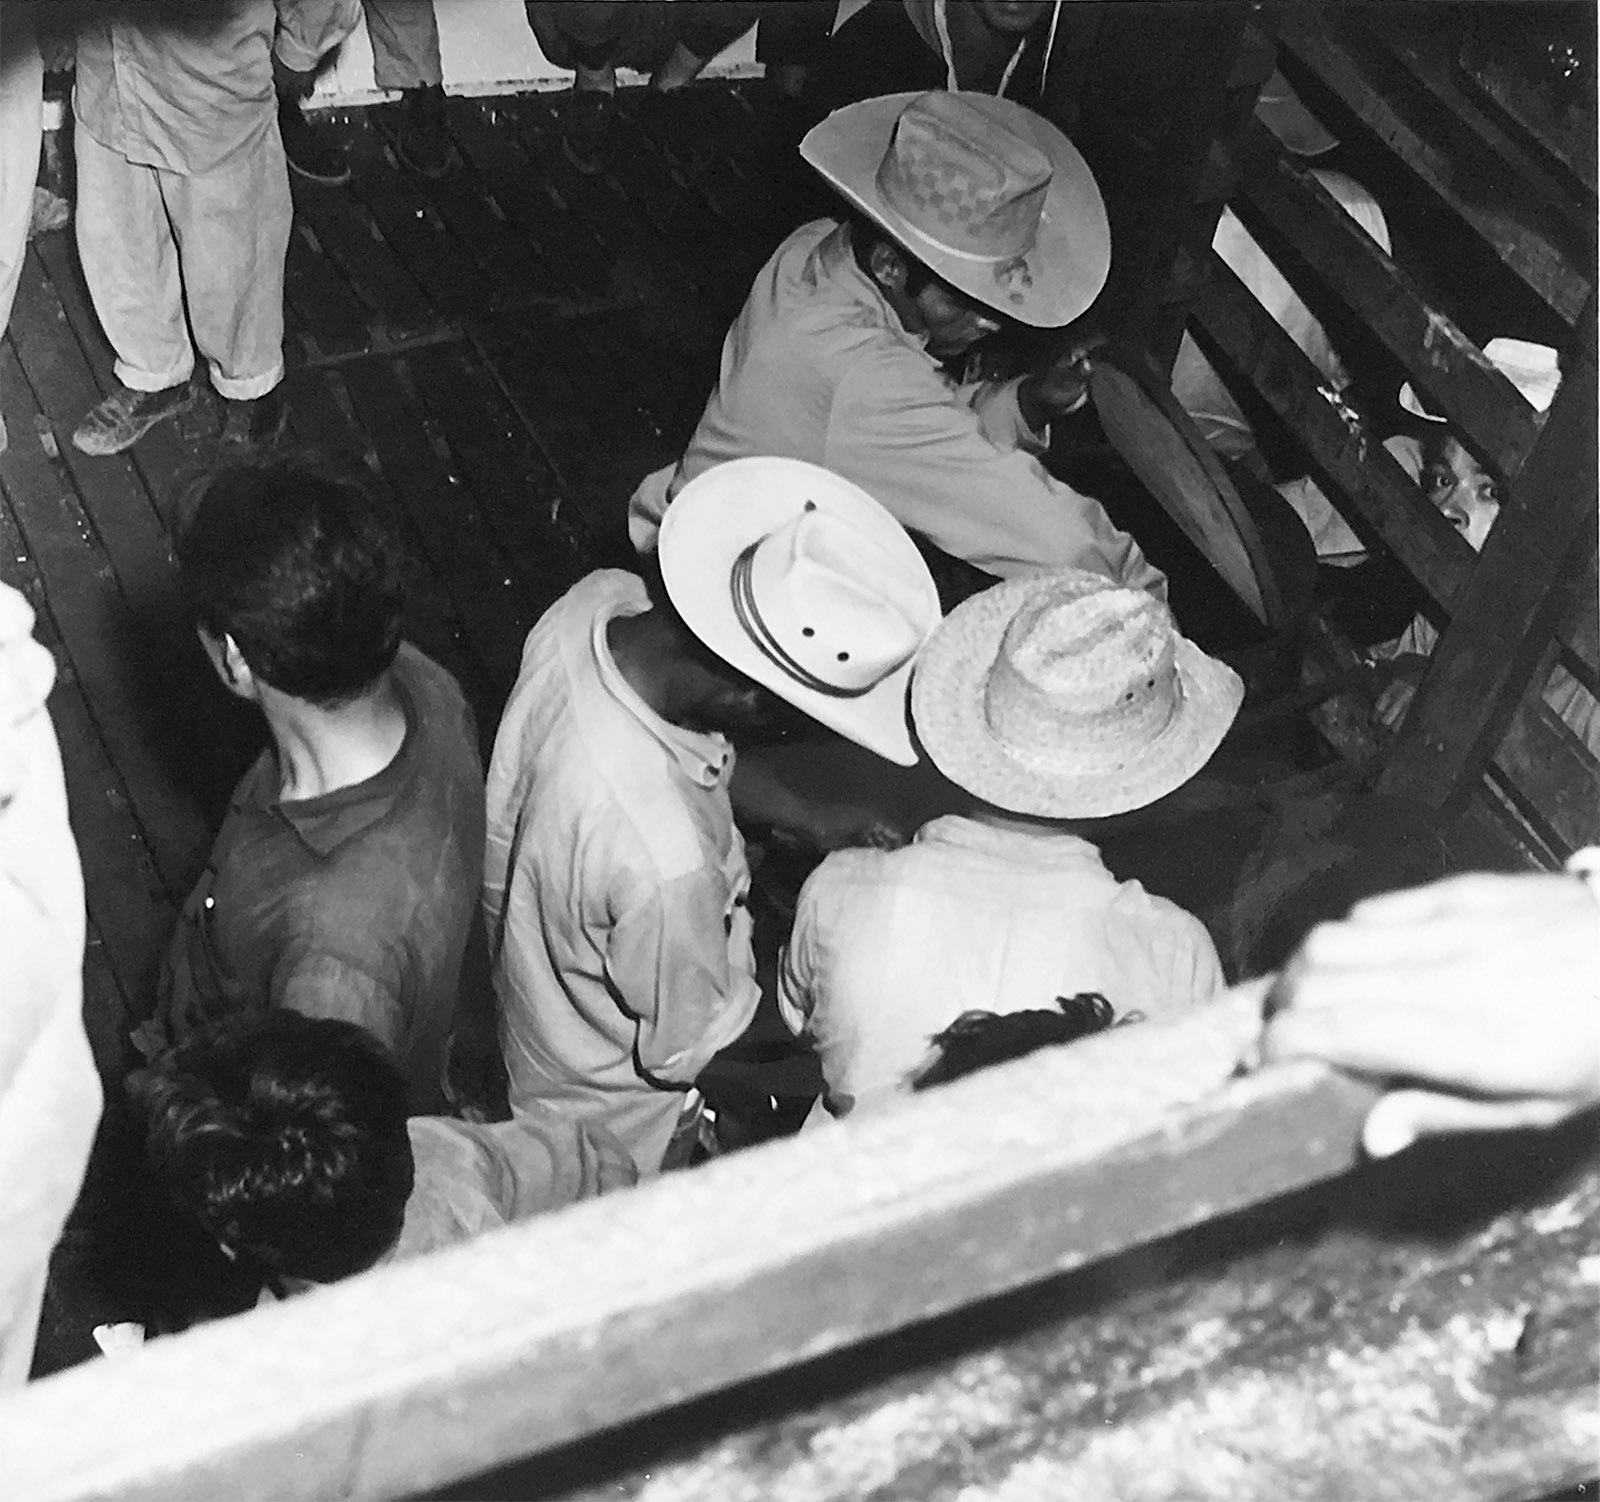 Mexican deportees on the SS Mercurio